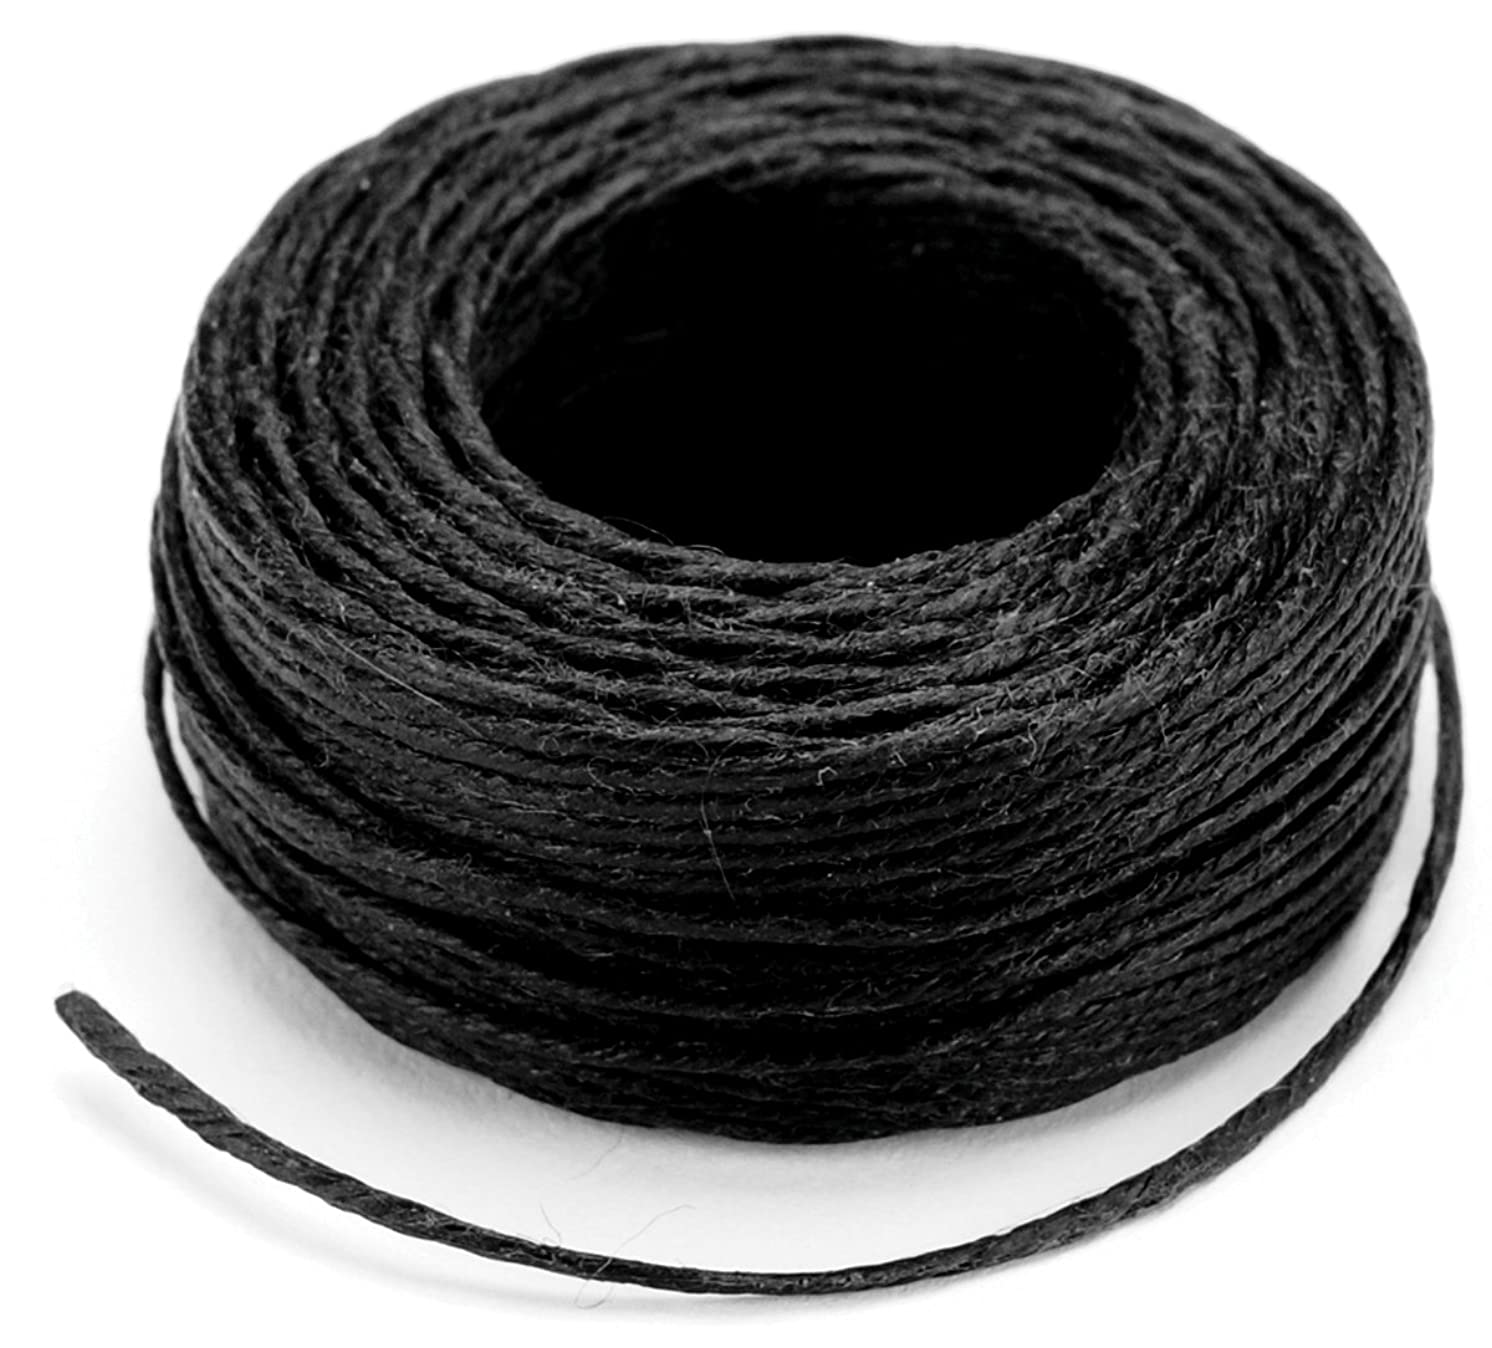 Tandy Leather Waxed Thread 25 yds (22.9 m) Black 11207-01